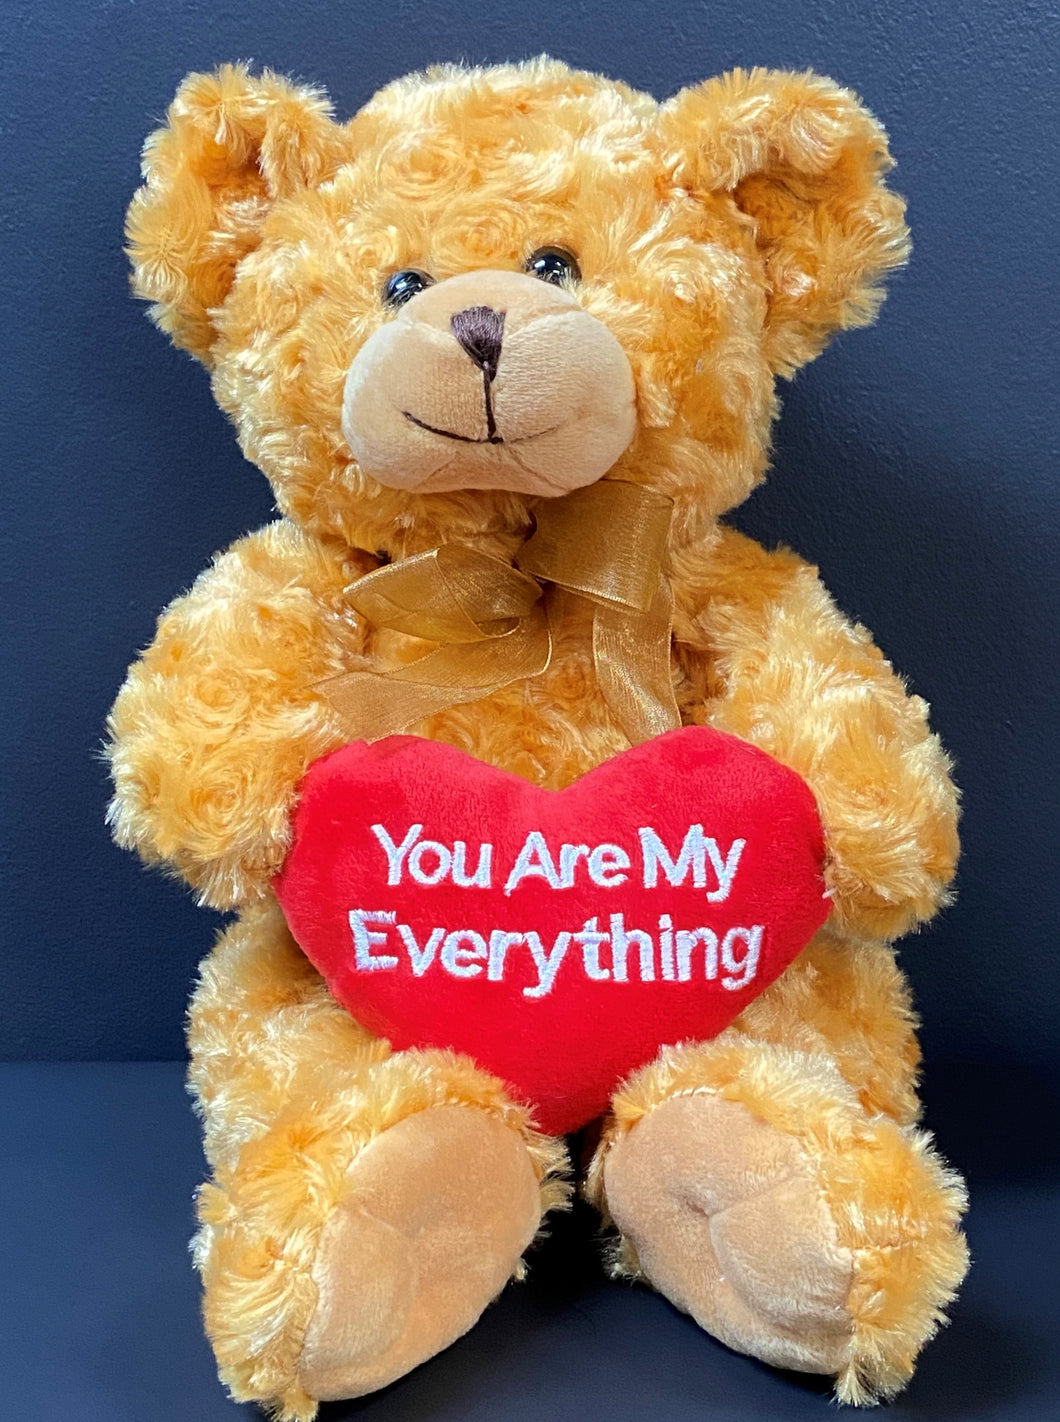 Jason Bear - You Are my Everything